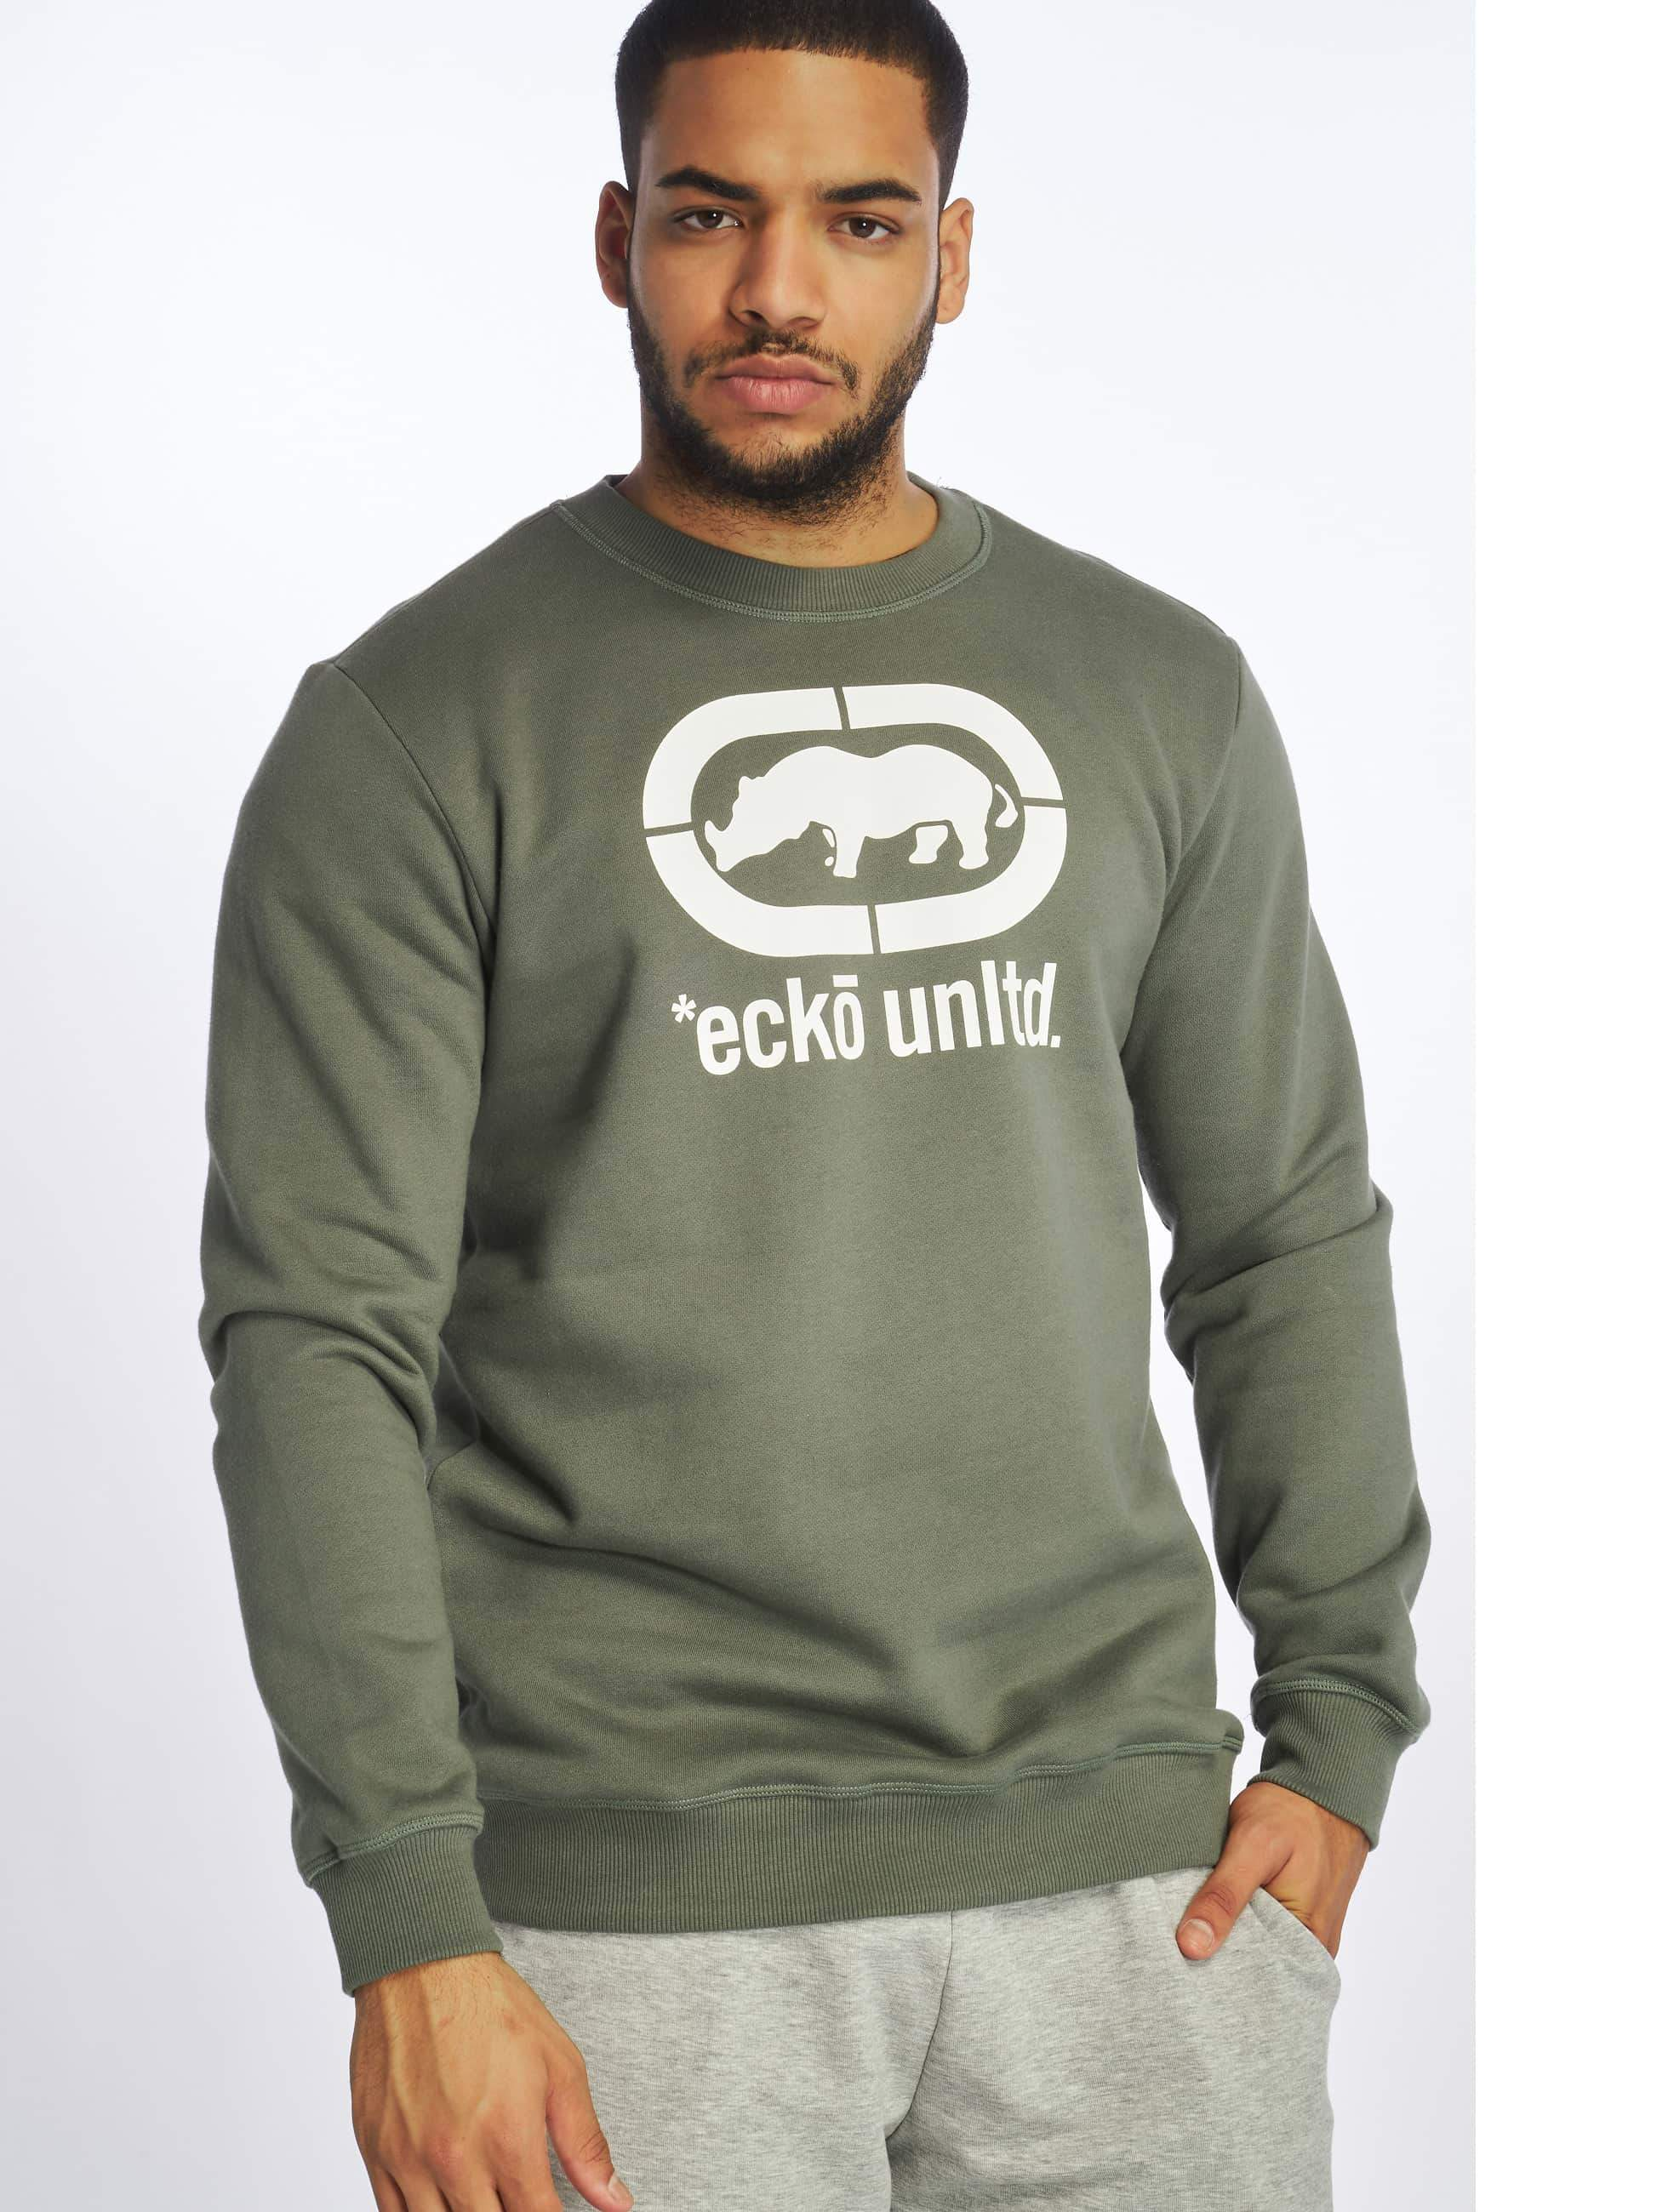 Ecko Unltd. / Jumper Base in olive 5XL